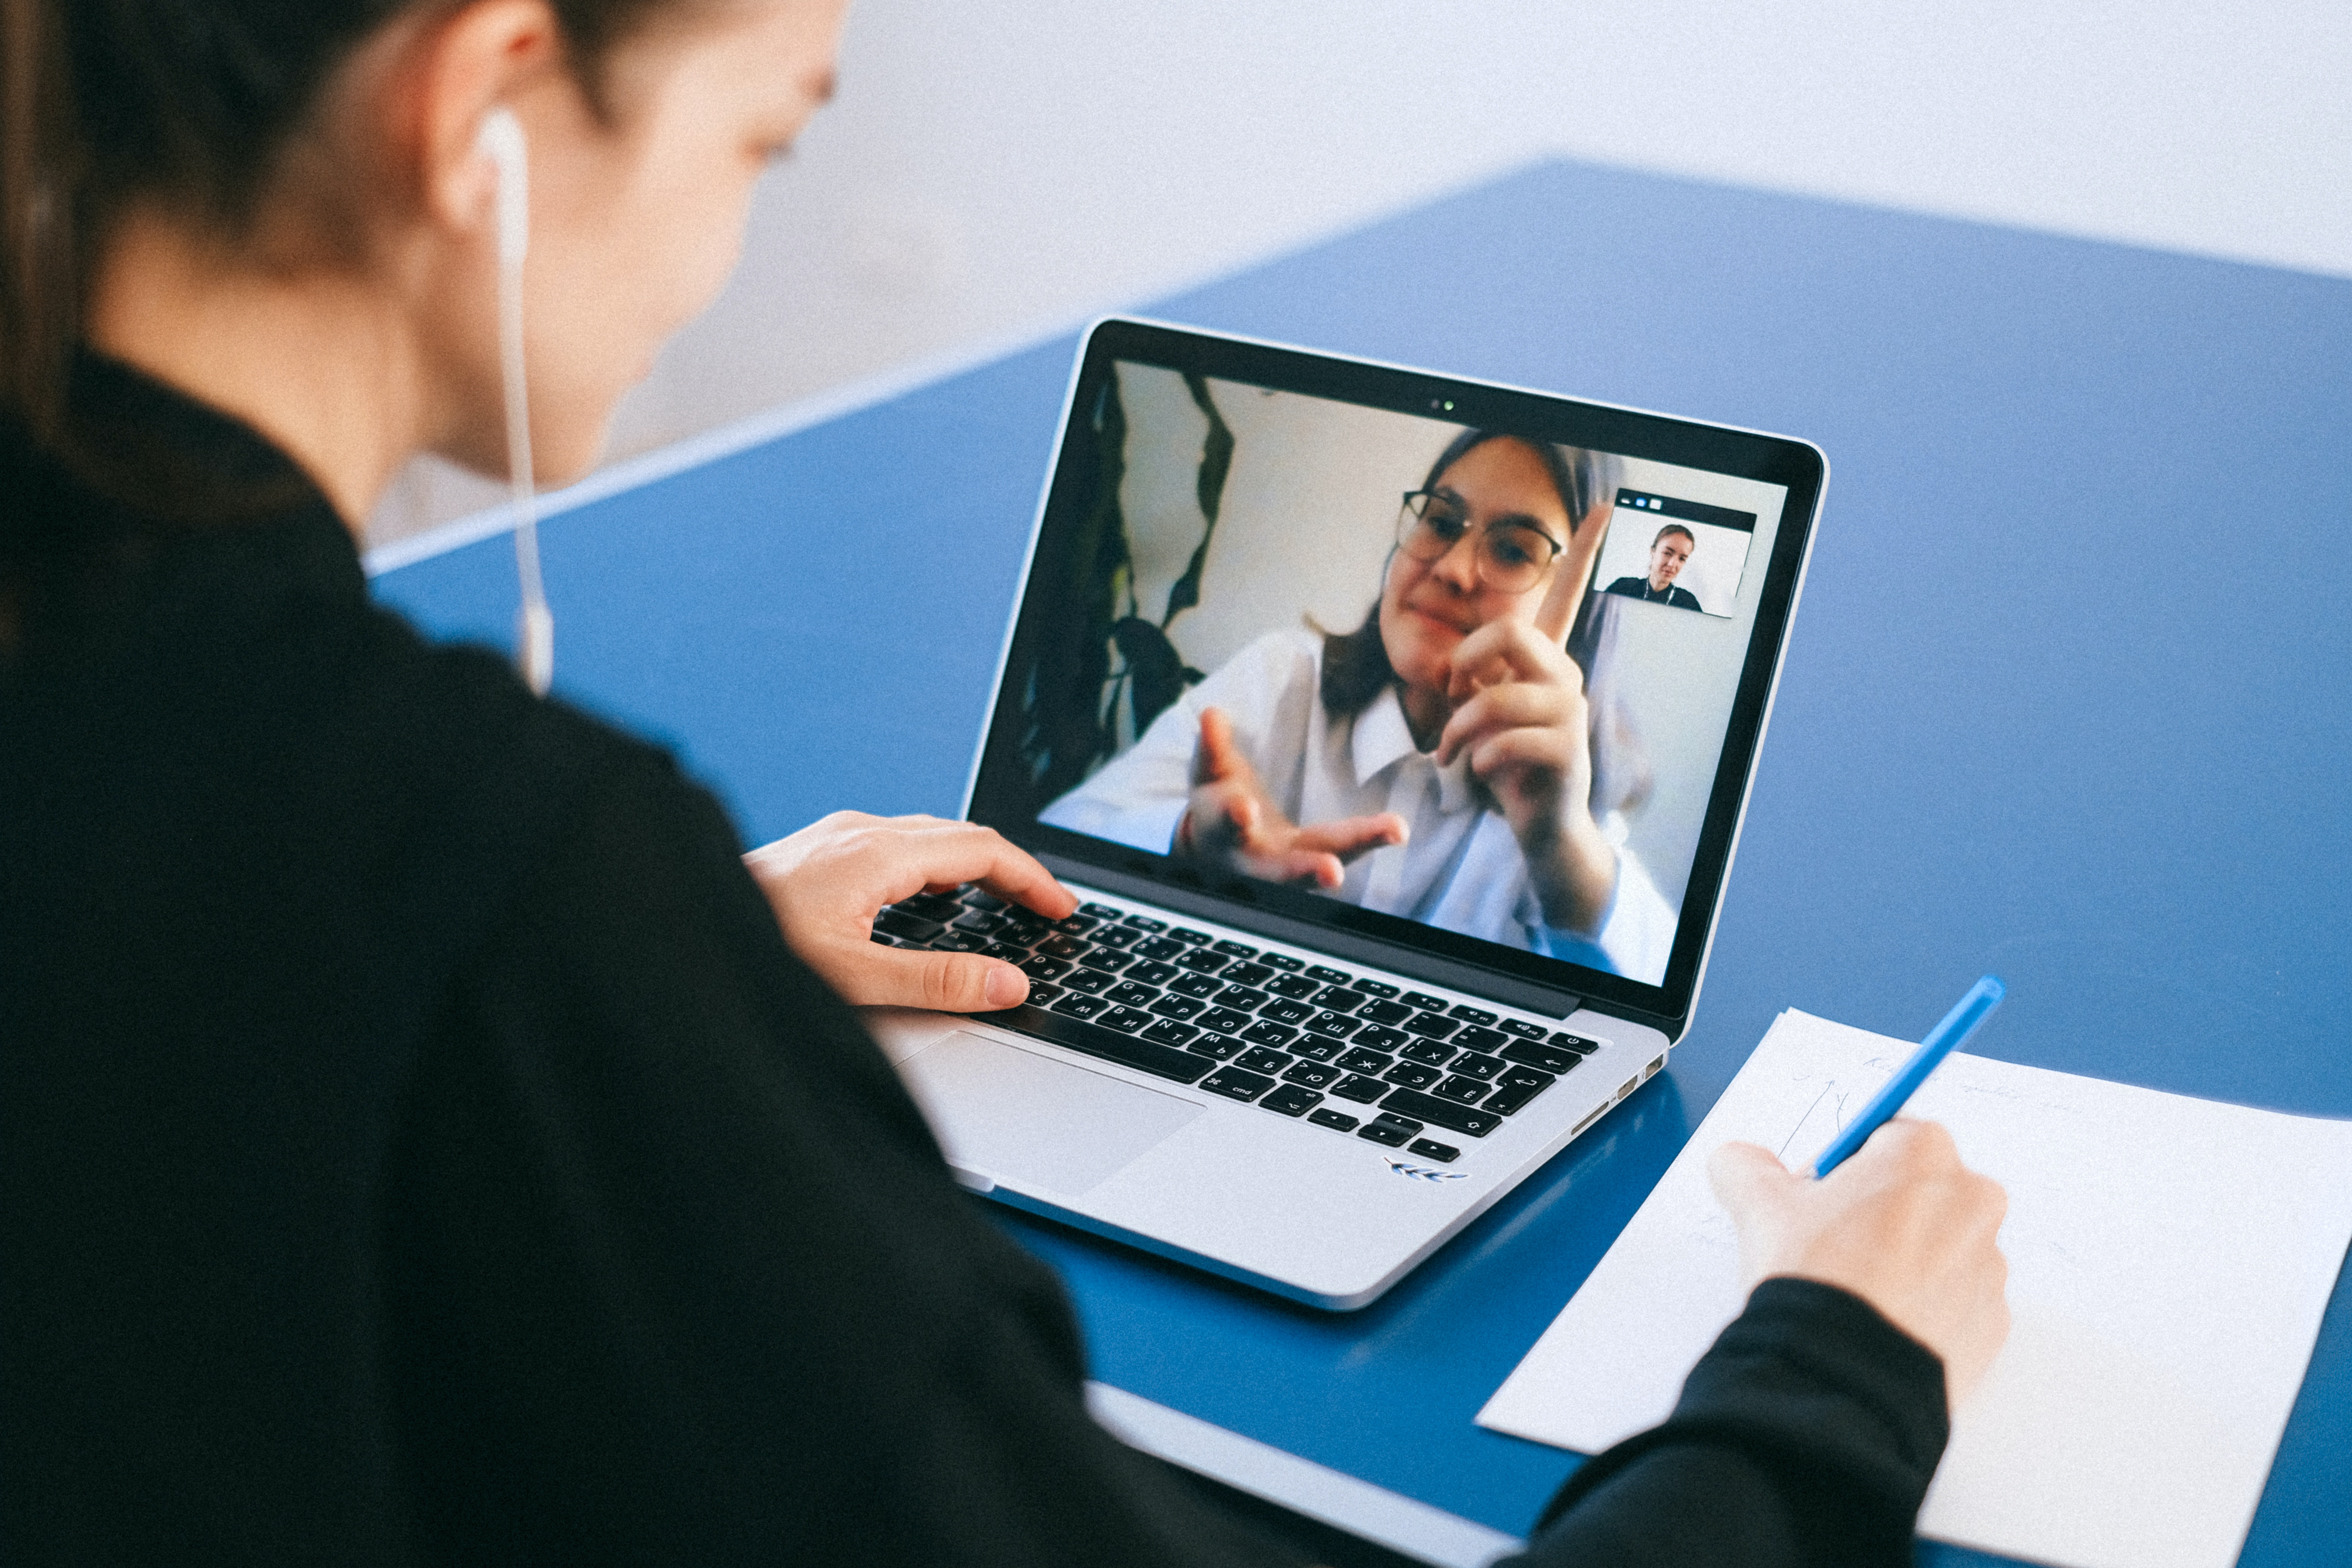 video meeting collaboration laptop meeting remote